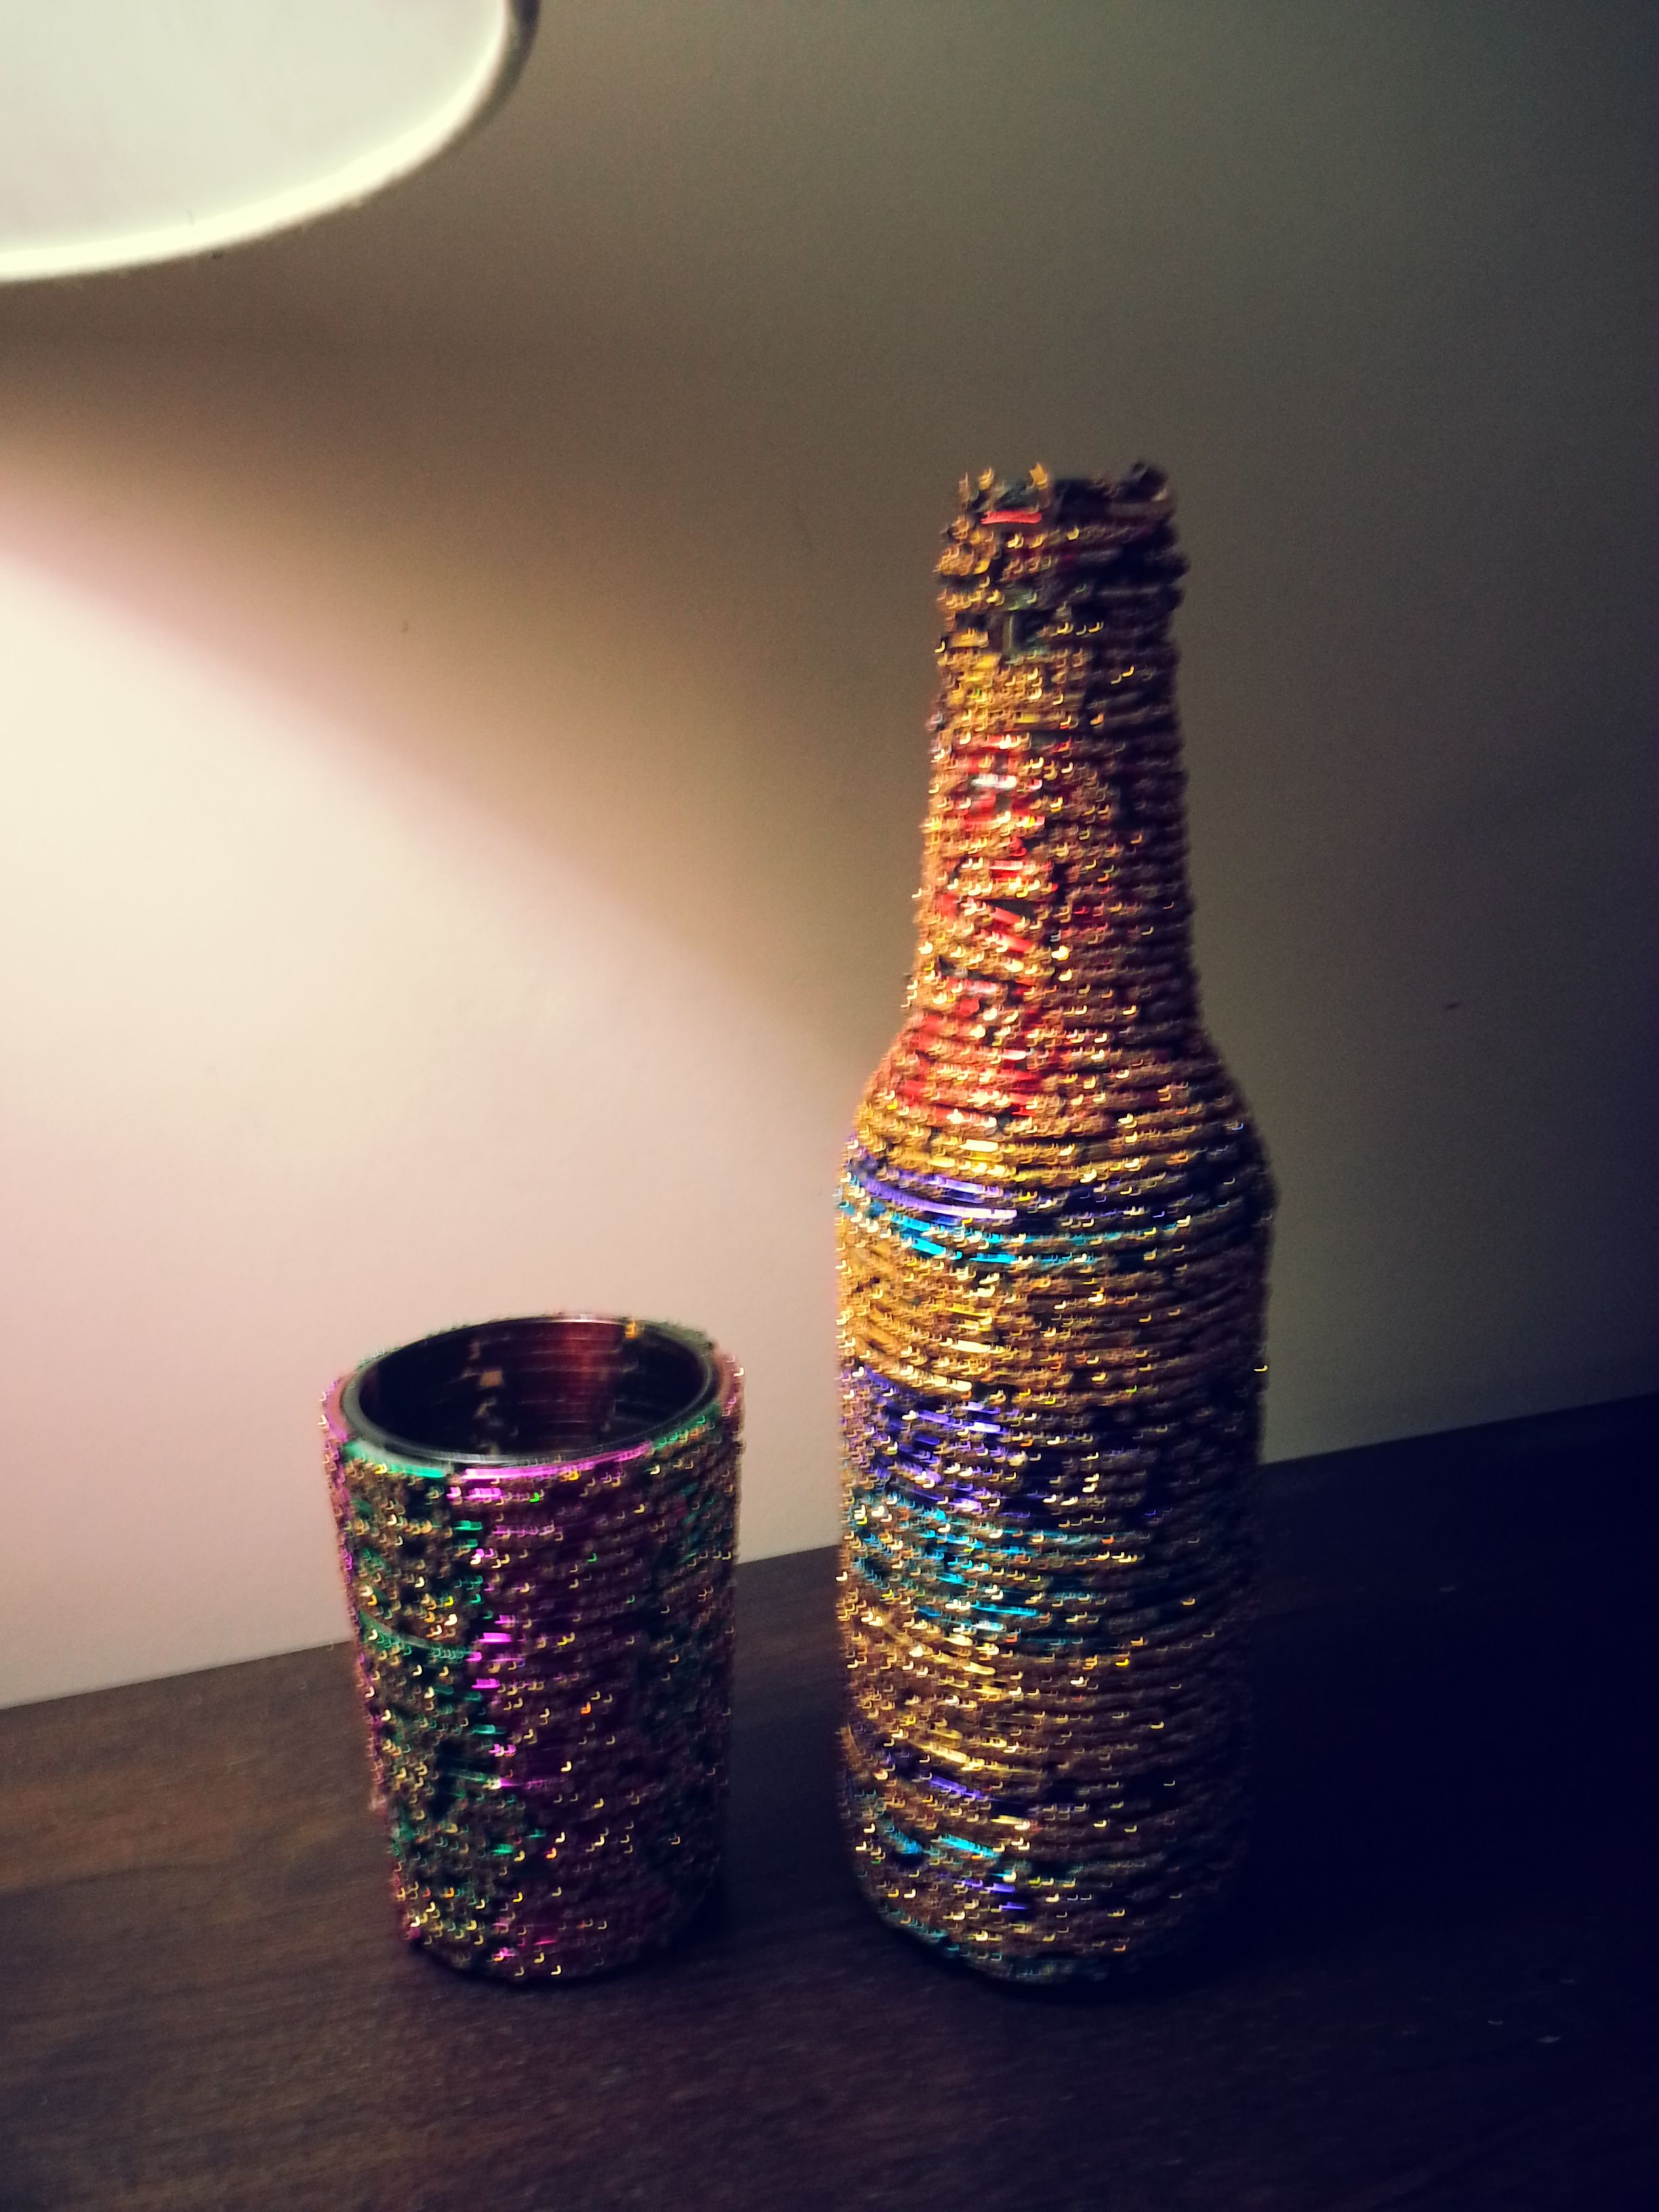 9 waste bangles art ideas activity for joy pinterest for Things out of waste